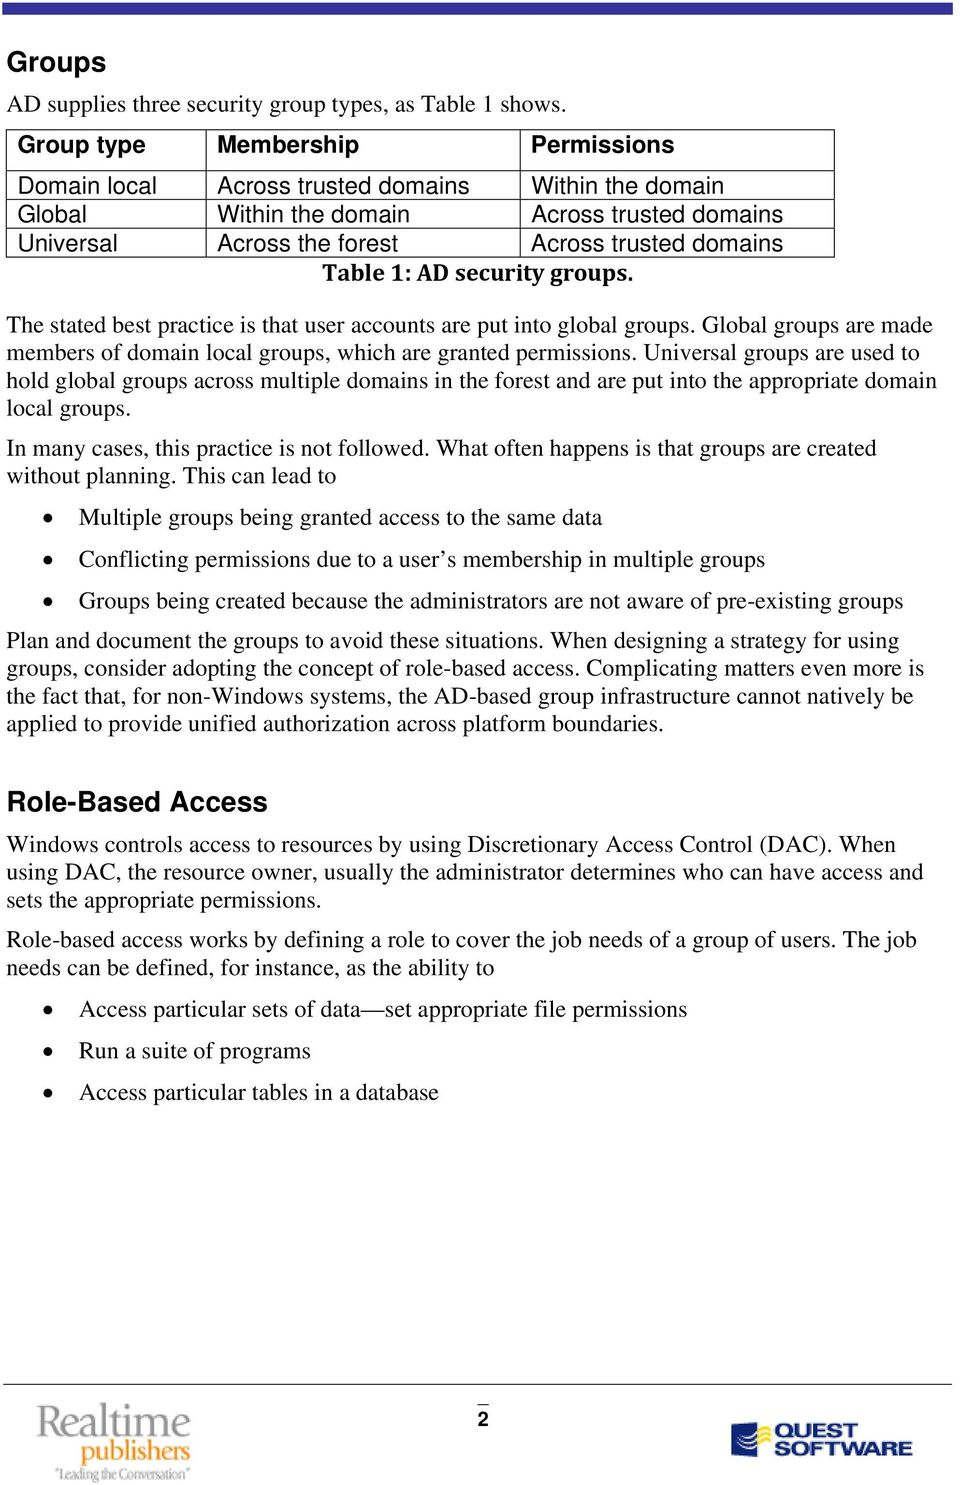 security groups. The stated best practice is that user accounts are put into global groups. Global groups are made members of domain local groups, which are granted permissions.